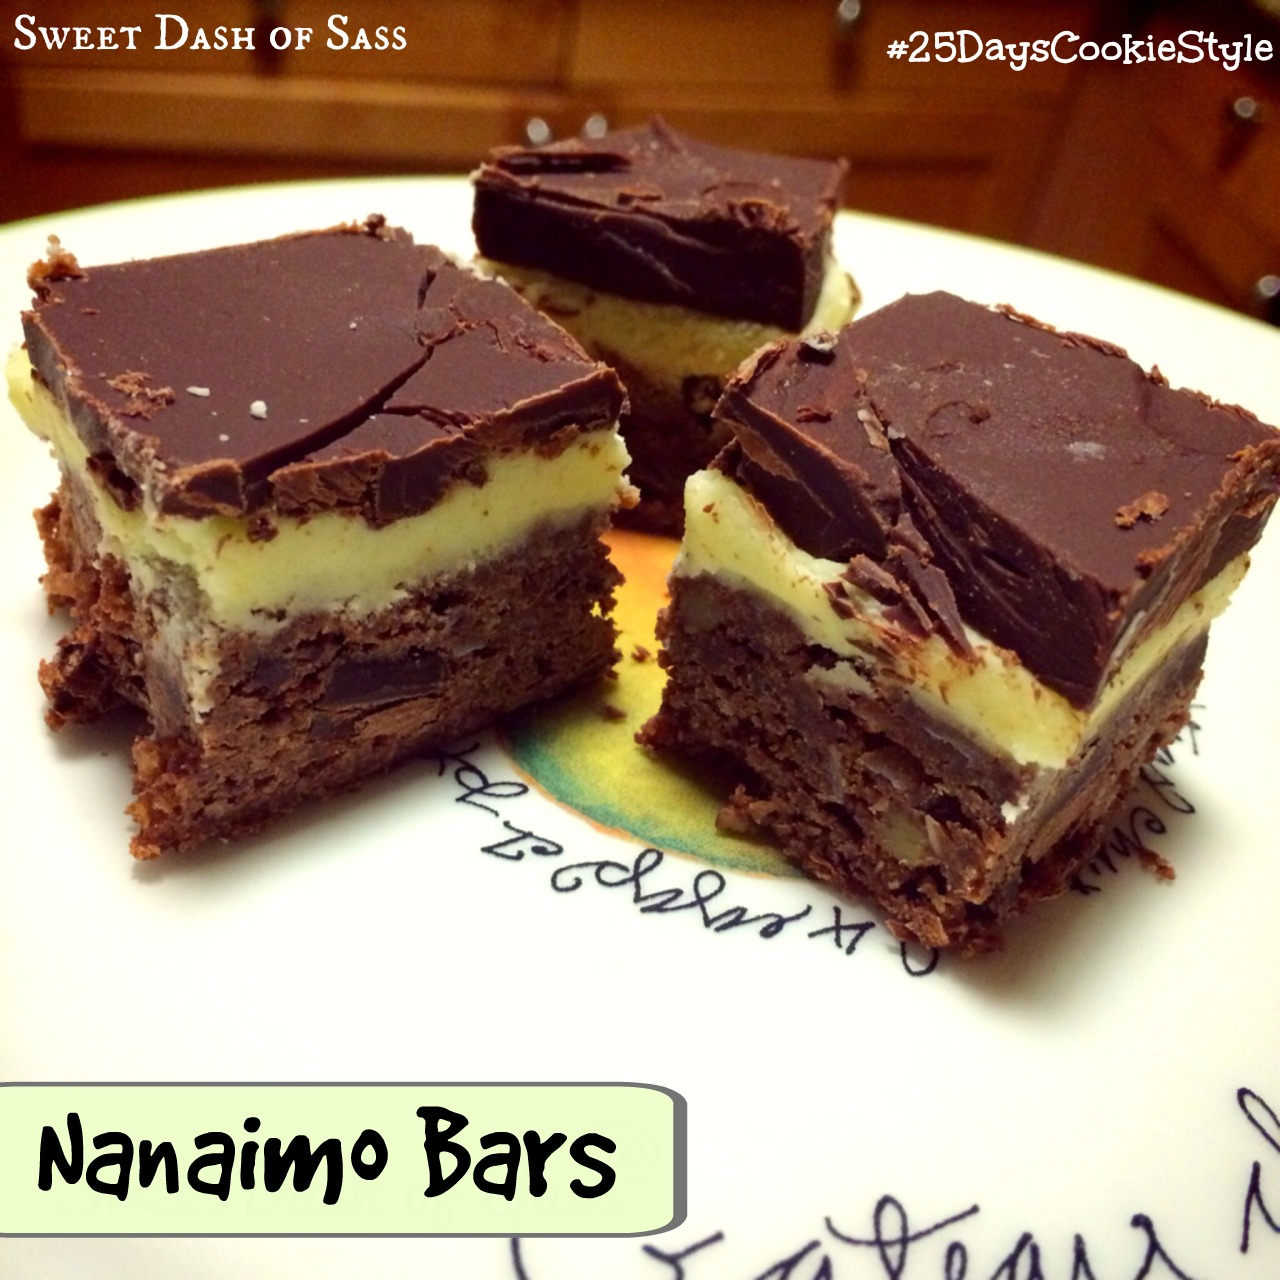 Nanaimo Bars - A Canadian Favorite!  #25DaysCookieStyle www.SweetDashofSass.com